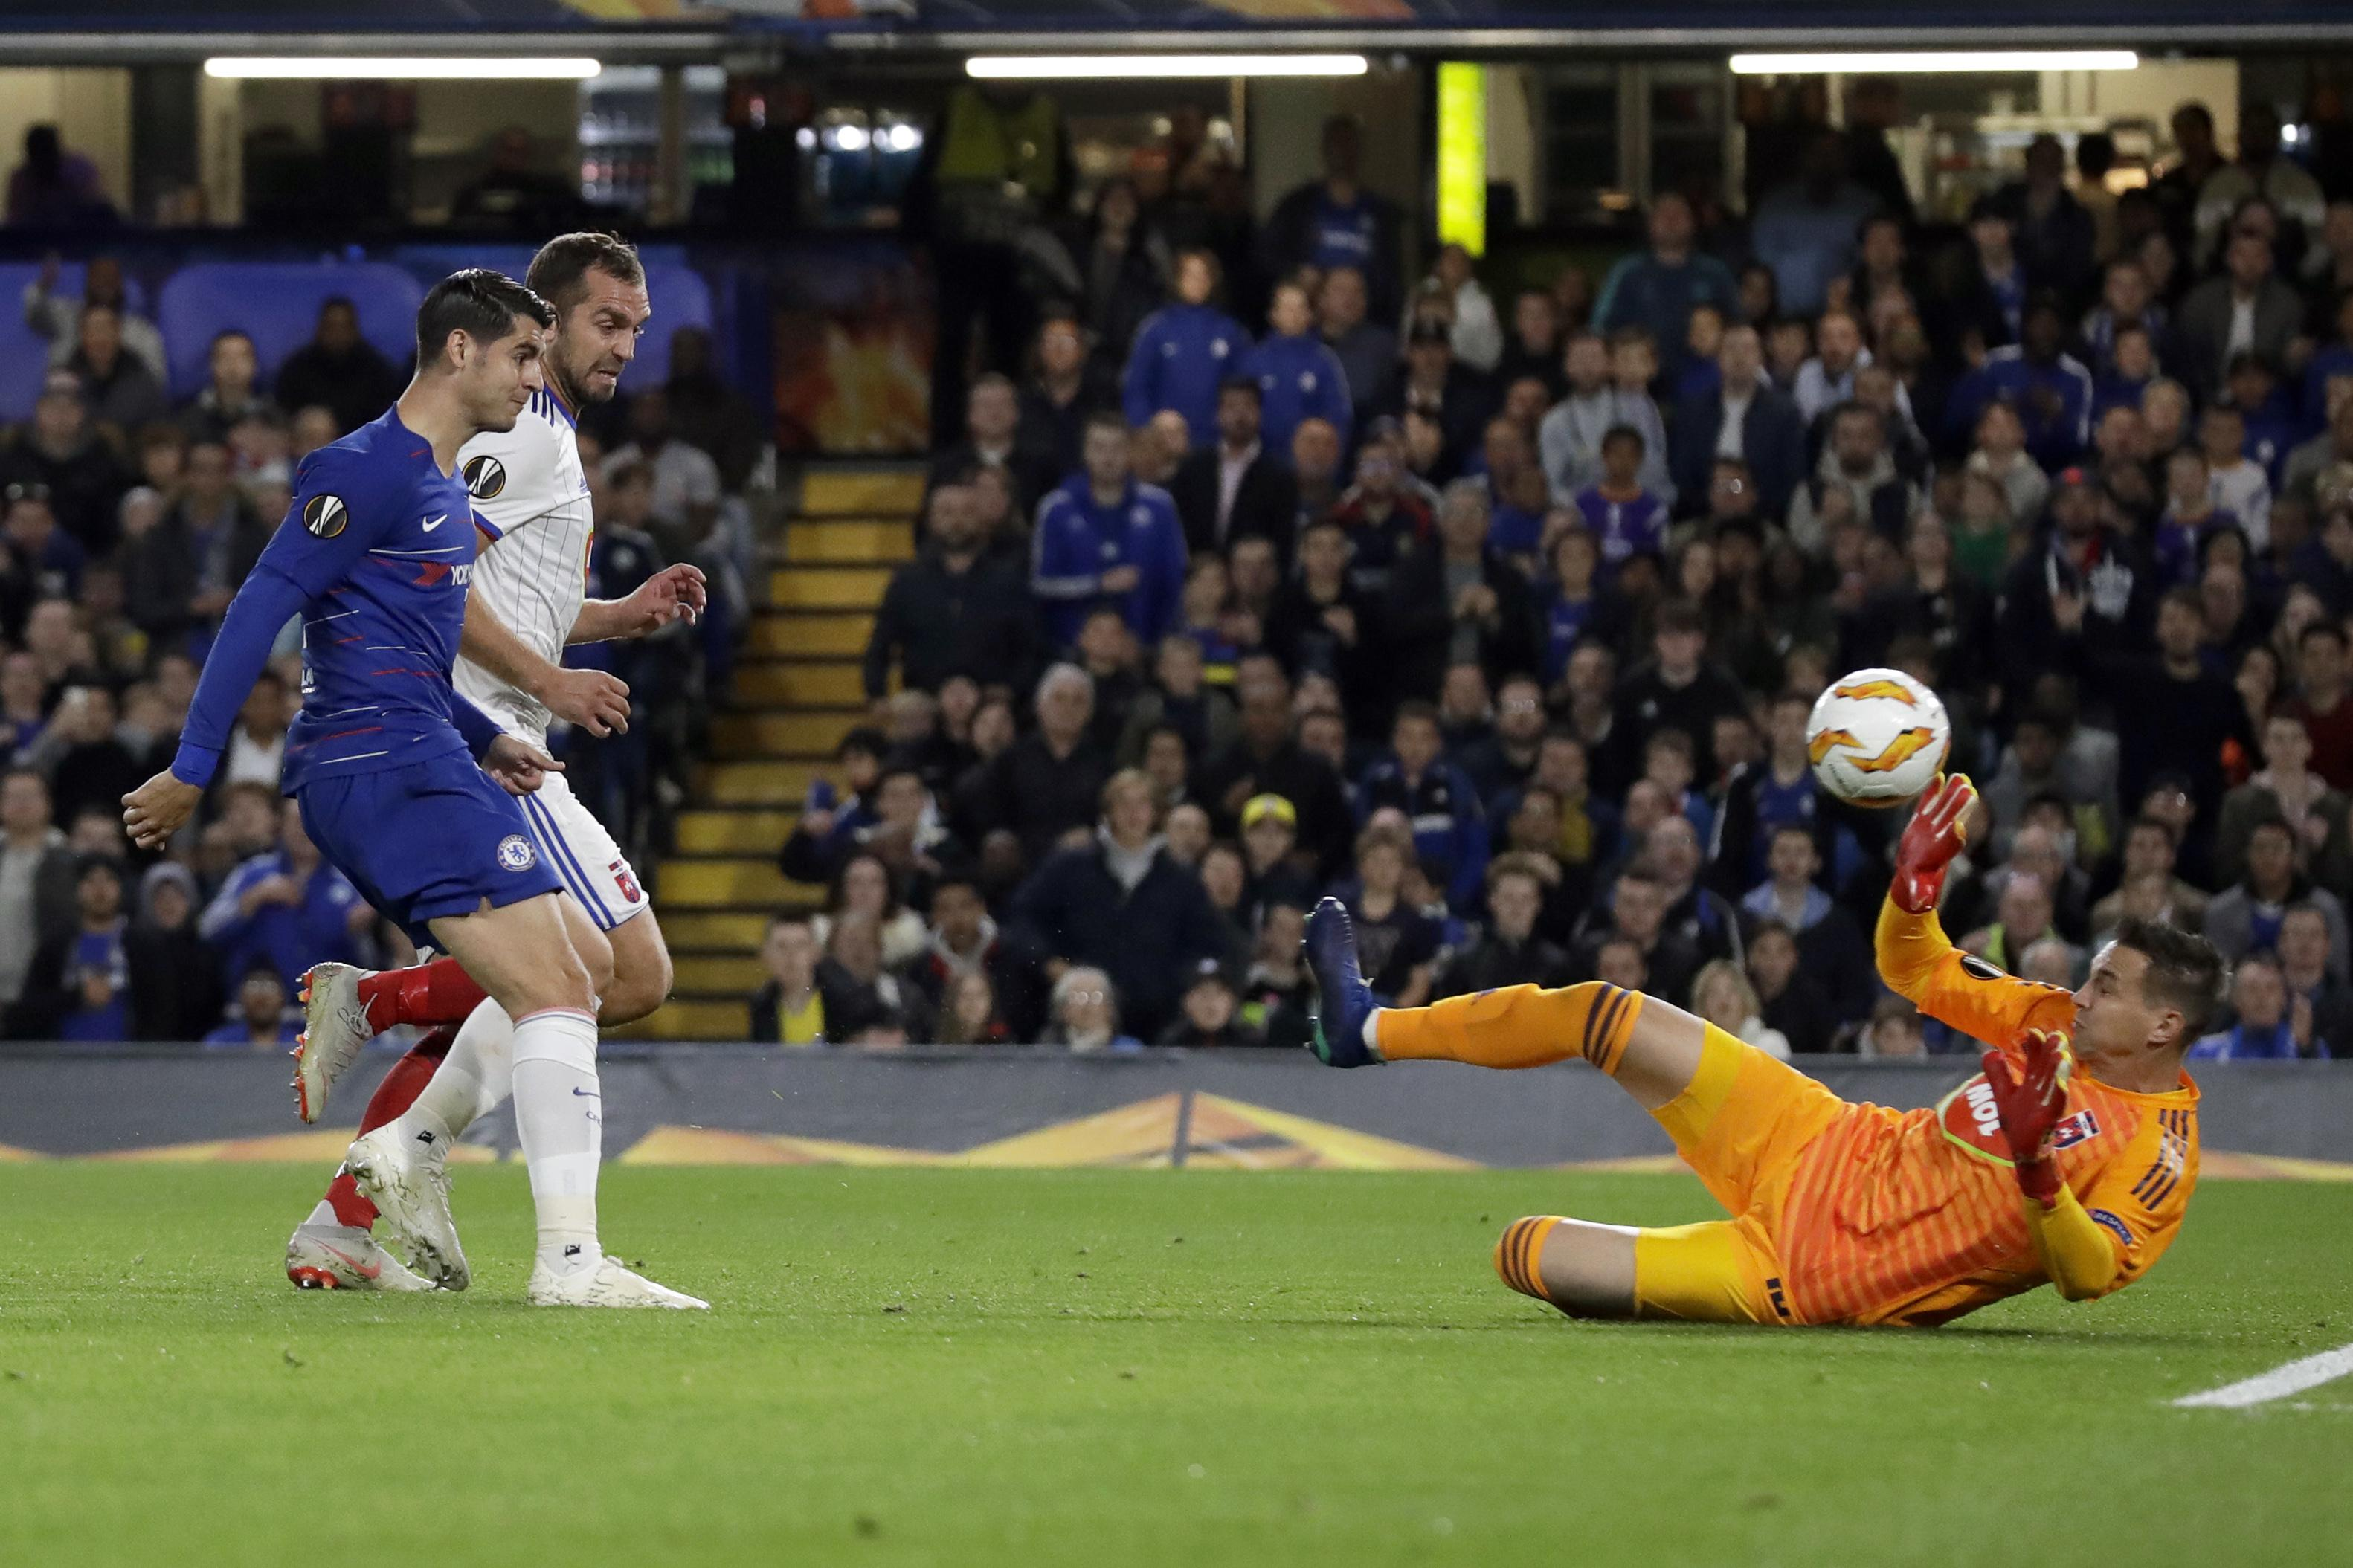 Alvaro Morata missed a sitter to fire Chelsea ahead